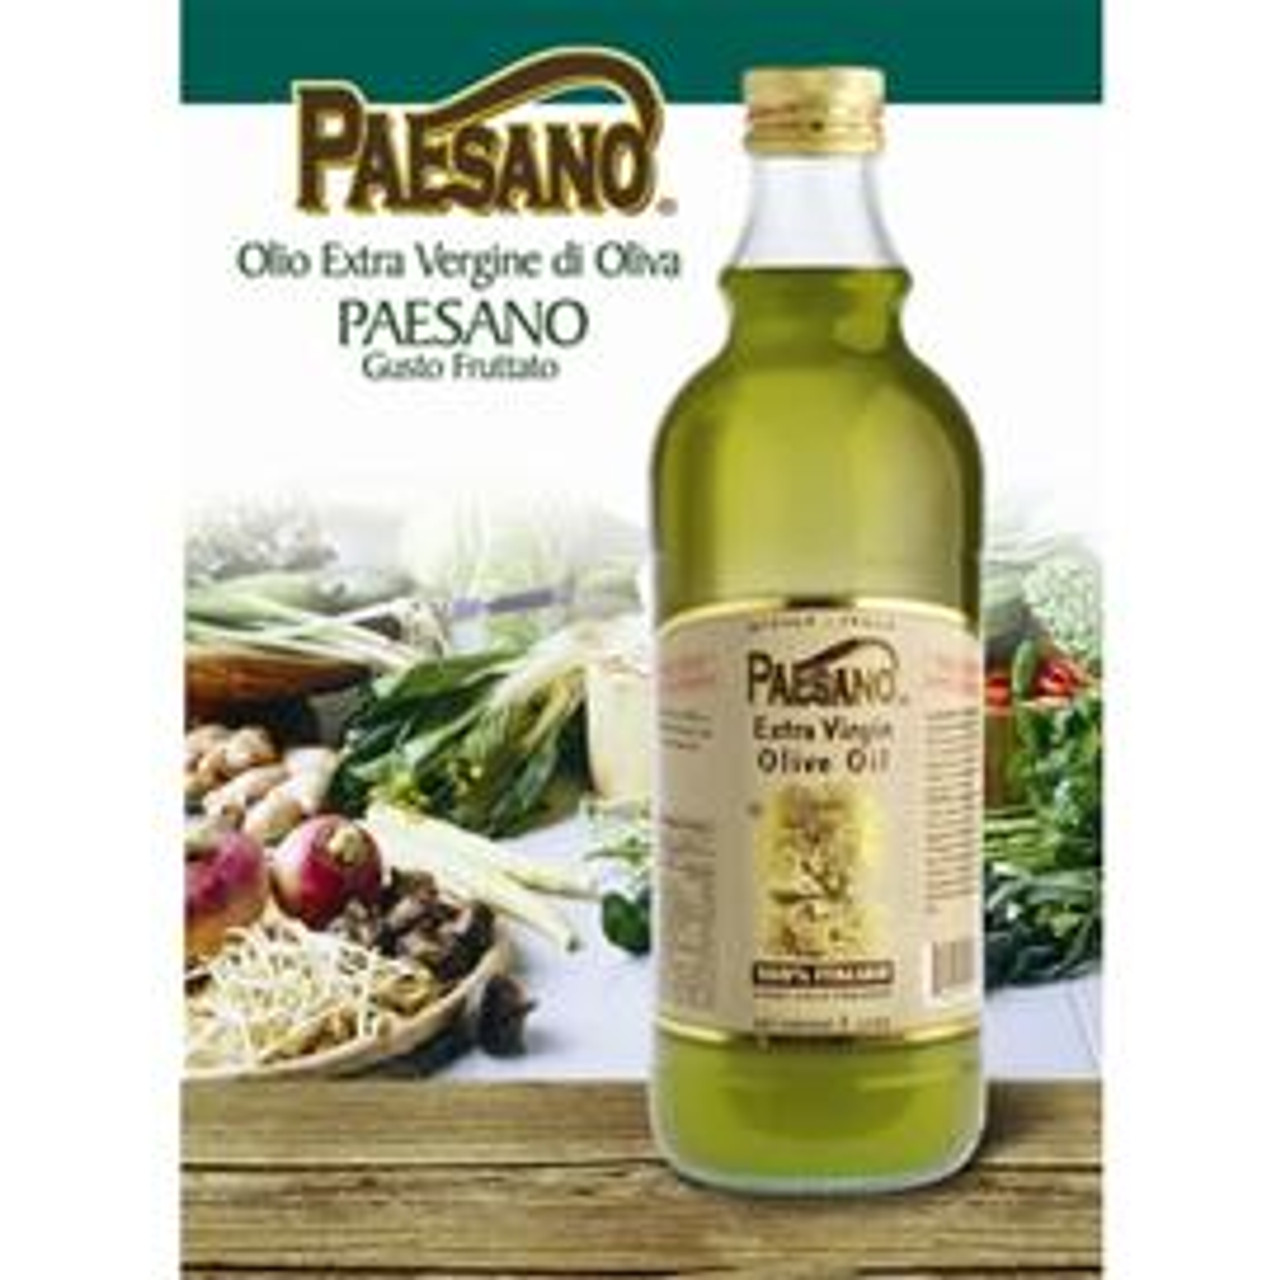 Paesano Extra Virgin Olive Oil